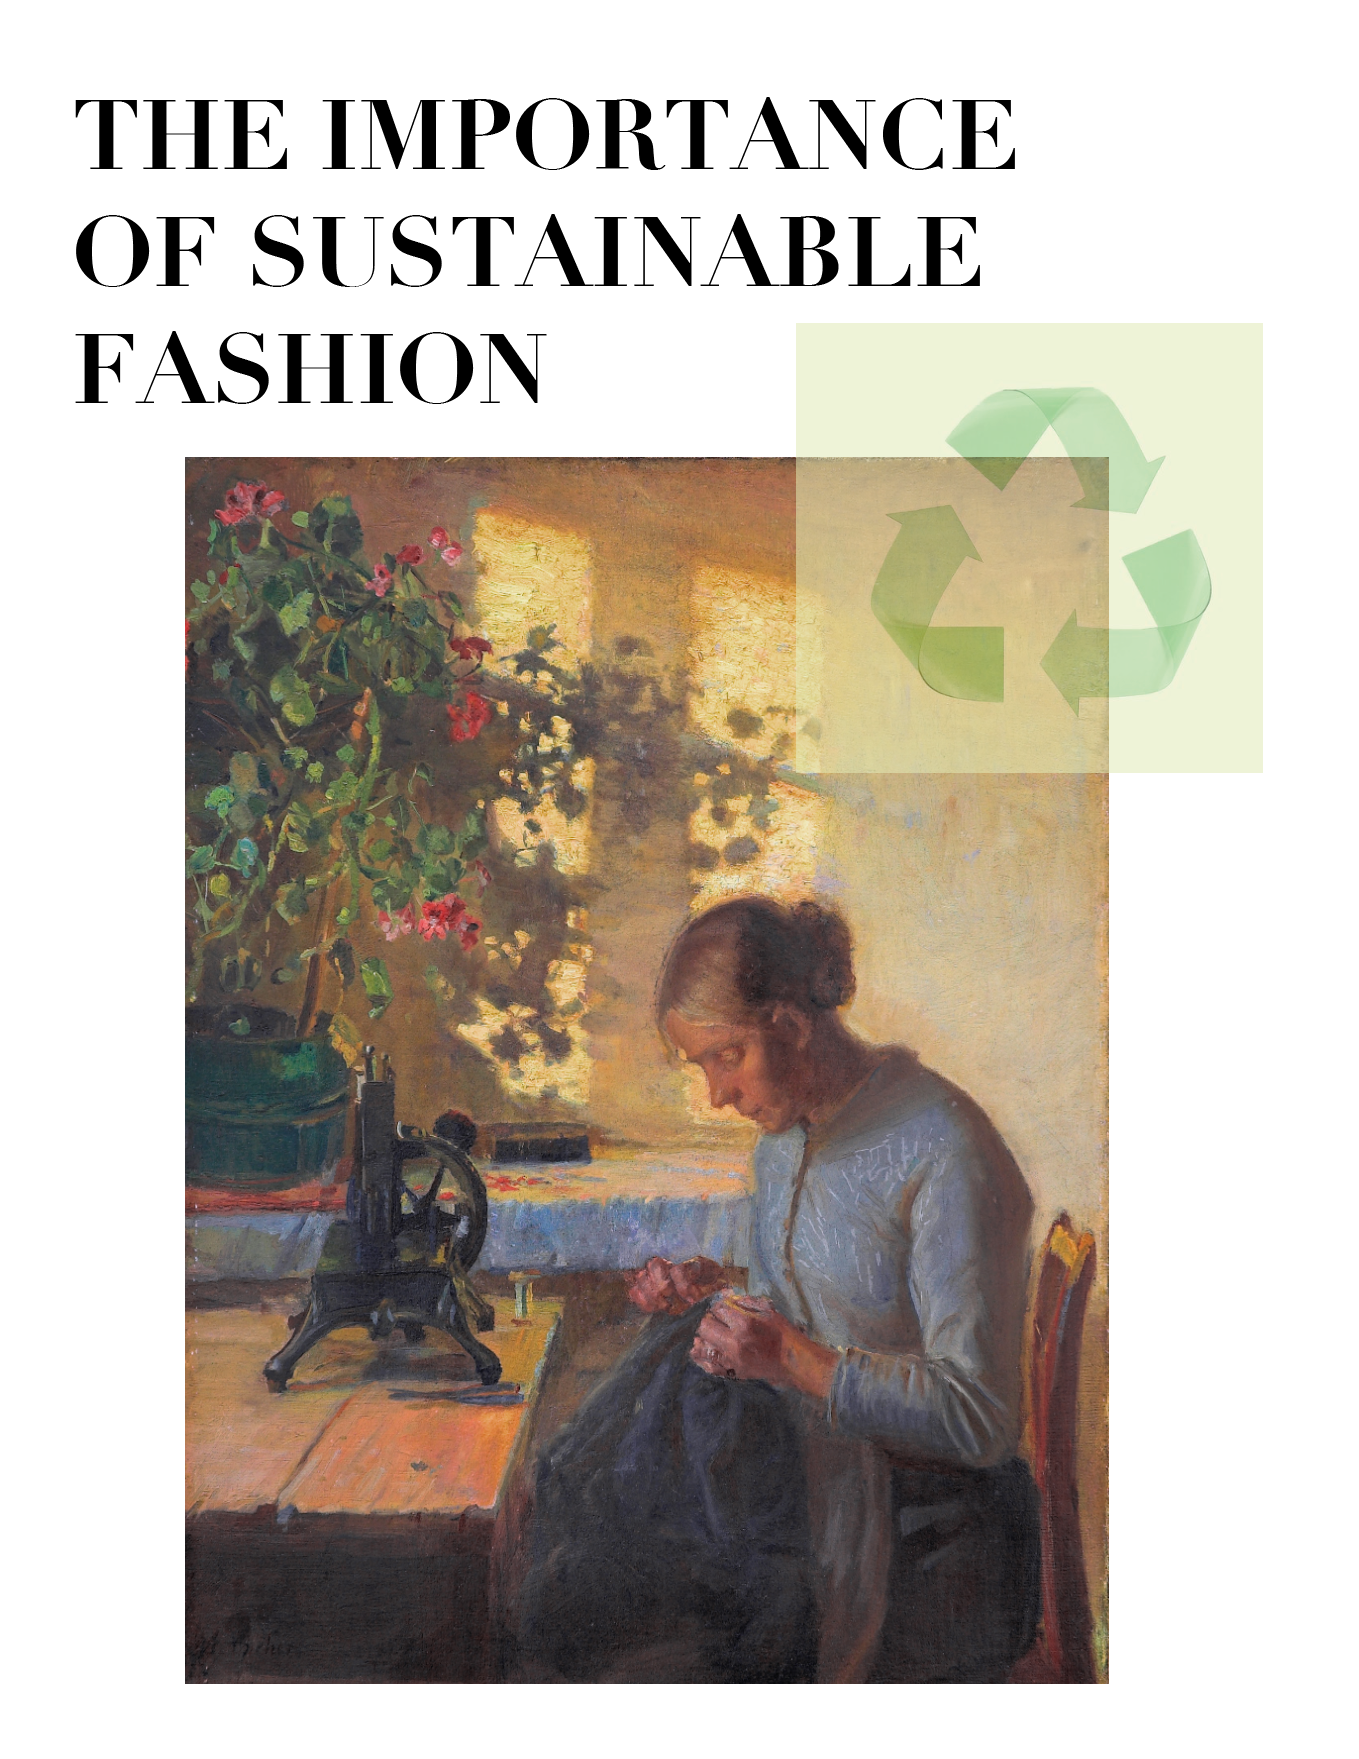 The importance of sustainable fashion